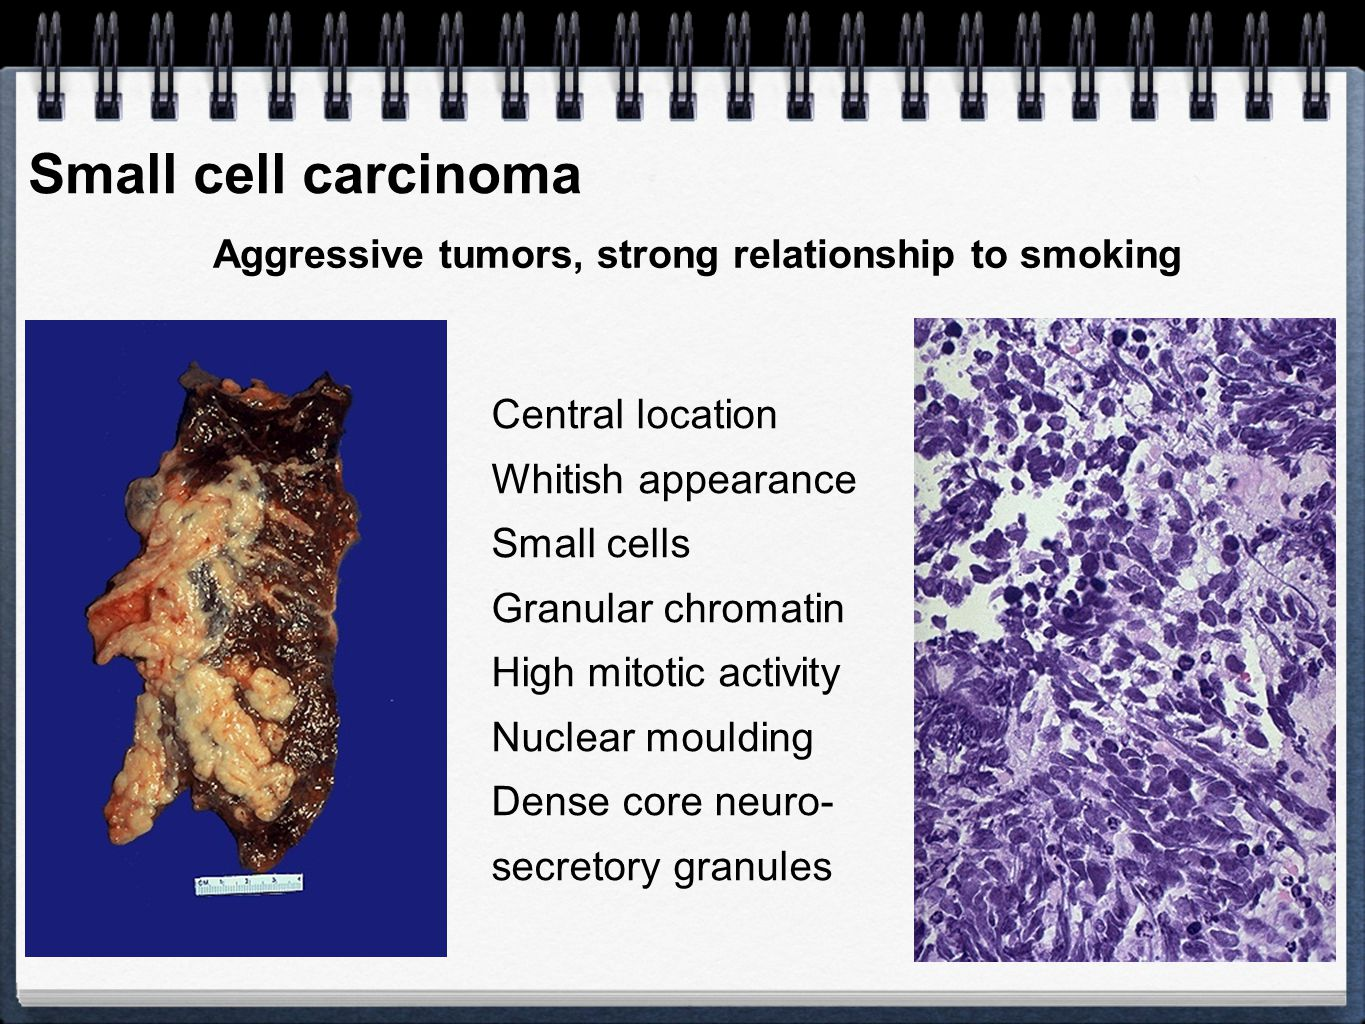 Aggressive tumors, strong relationship to smoking